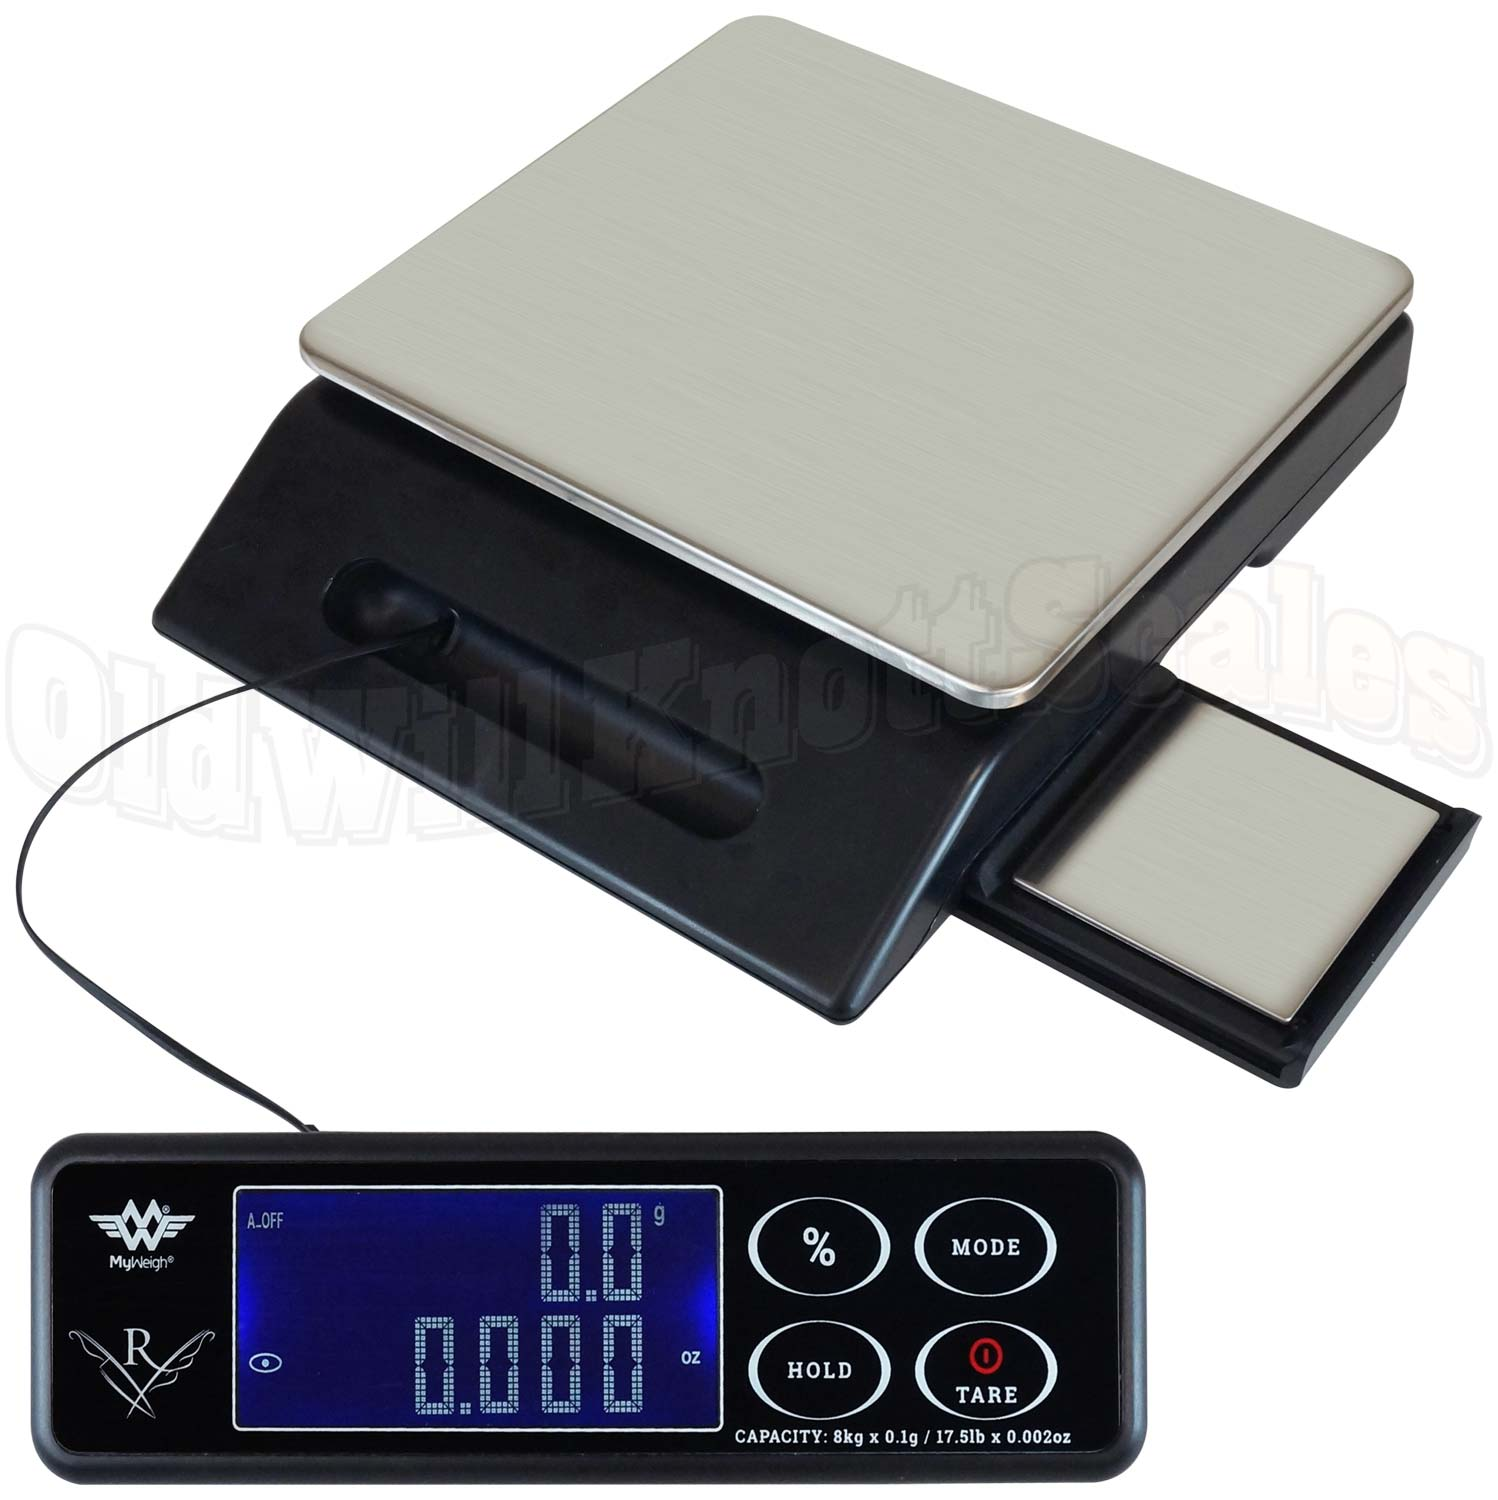 My Weigh Maestro Digital Kitchen Scale + Slide Out Precision Platform